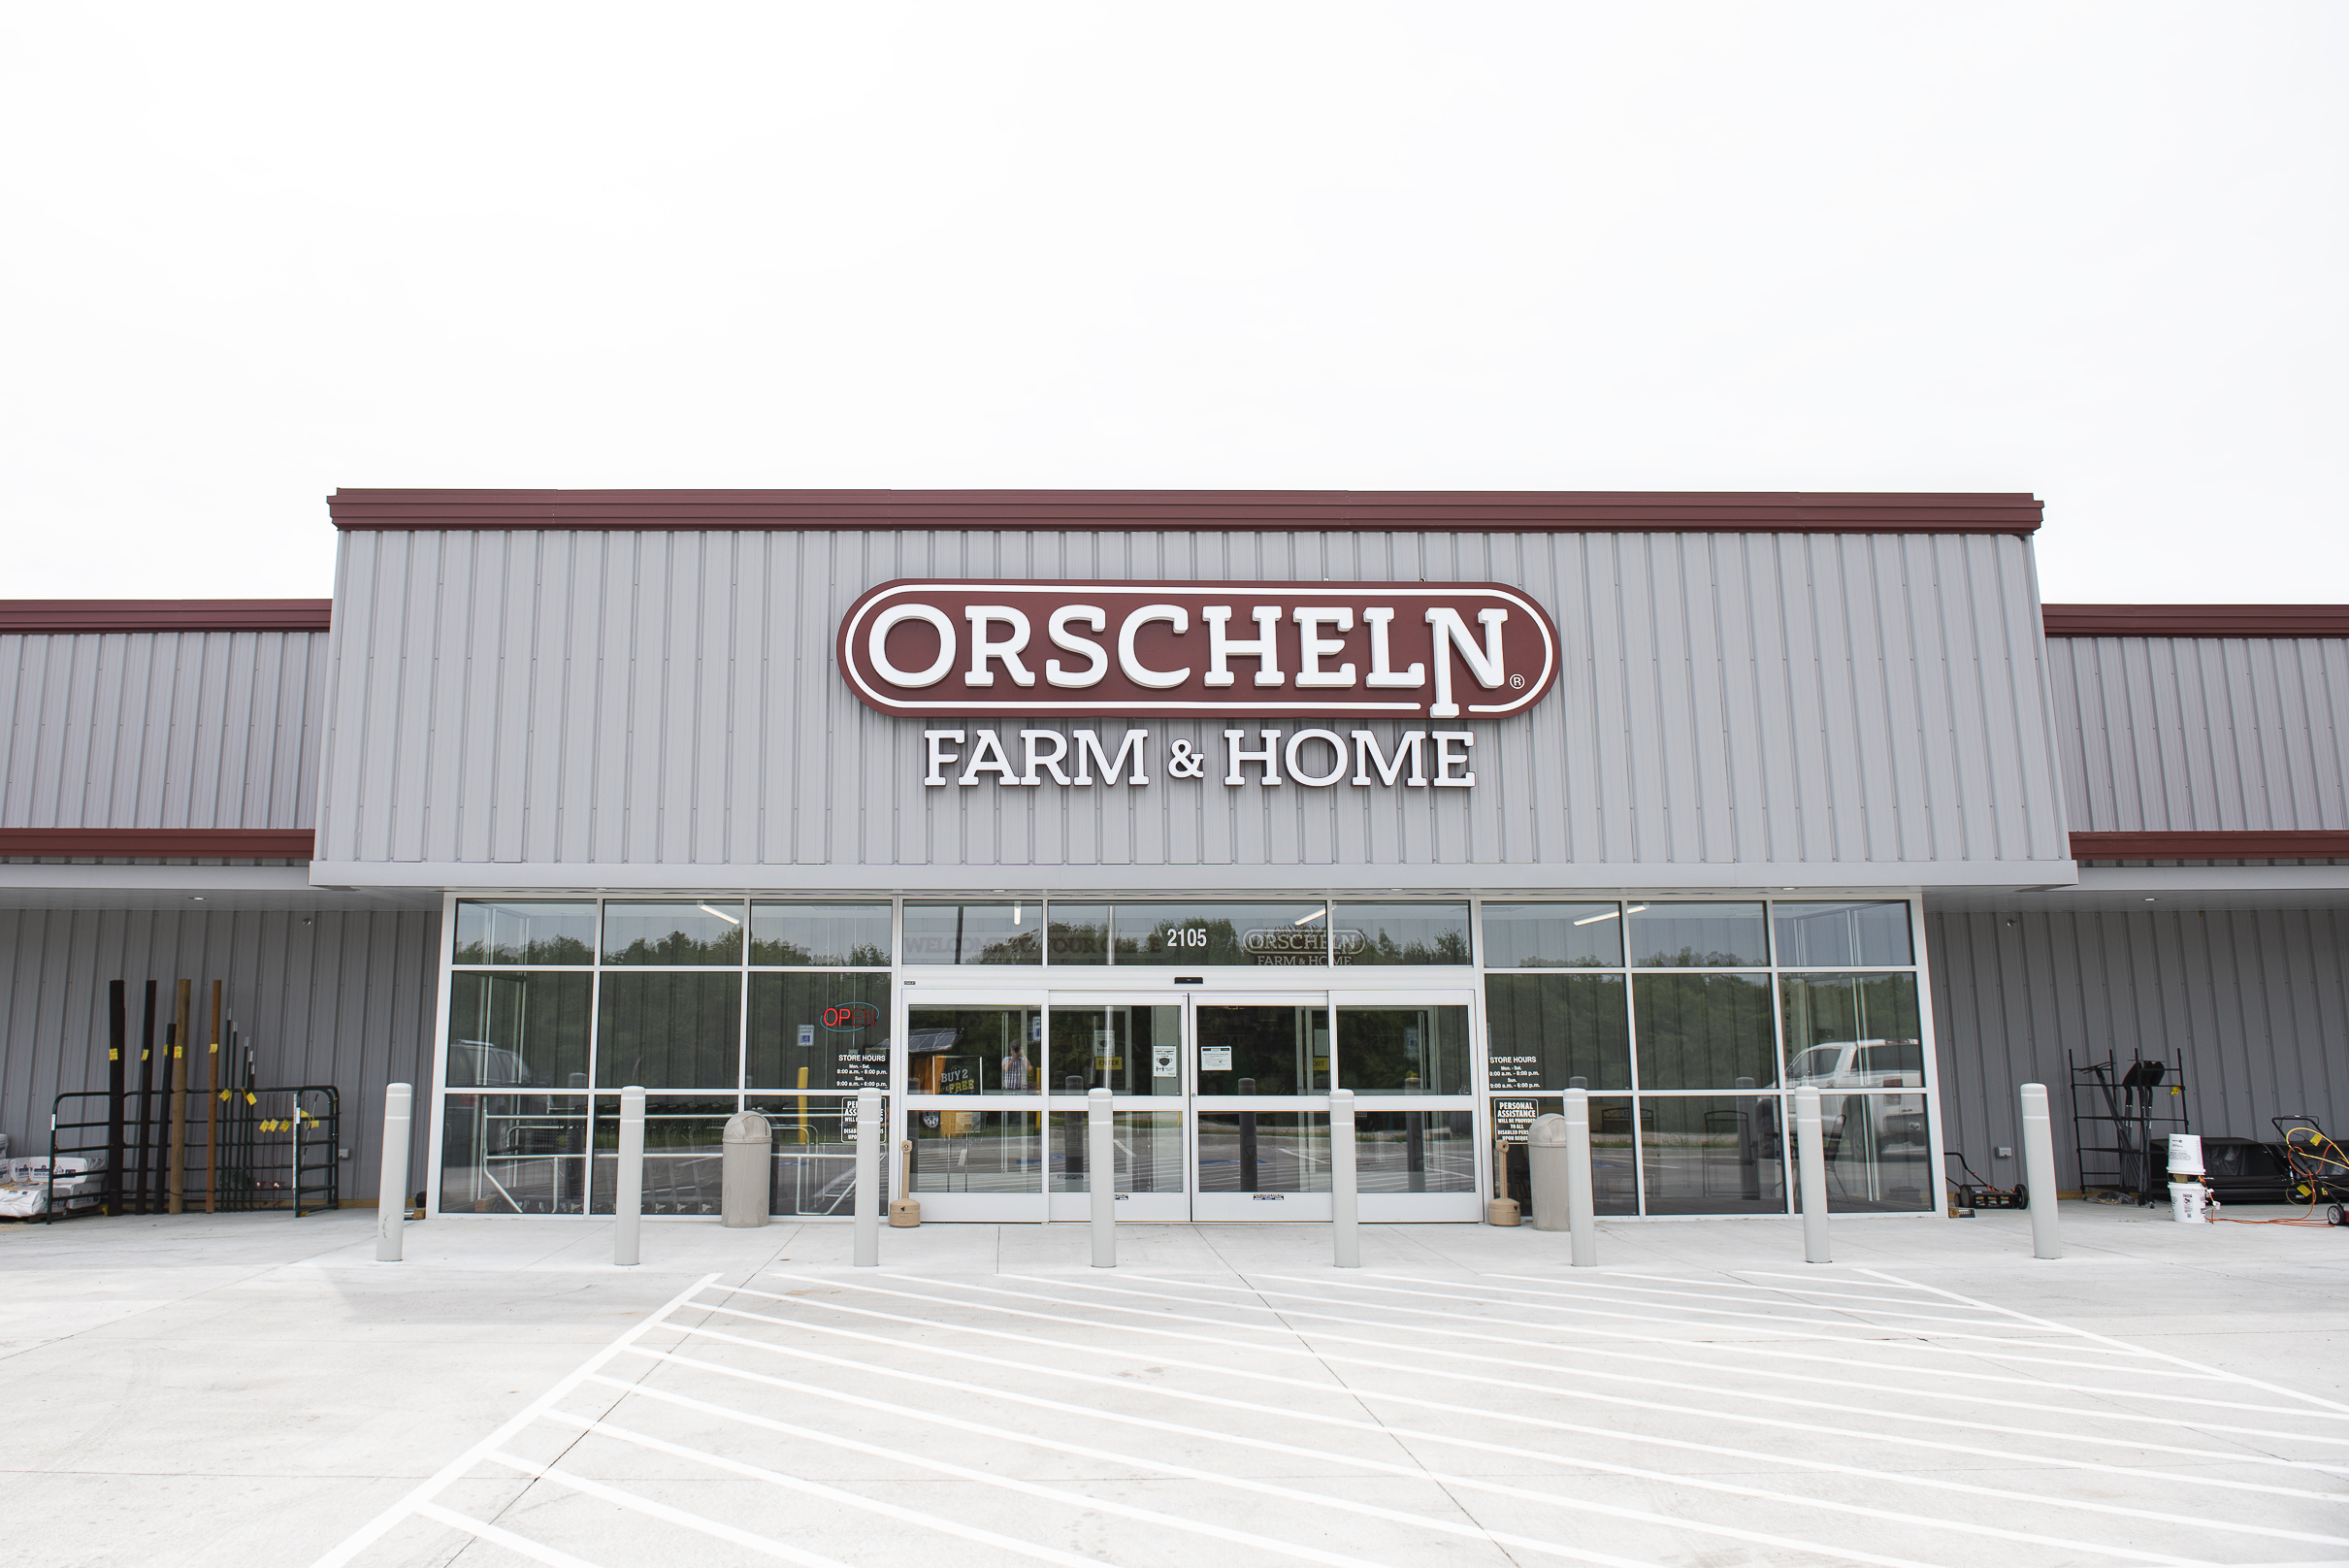 Front view of Orscheln Farm & Home Store in Crete, Nebraska 68333